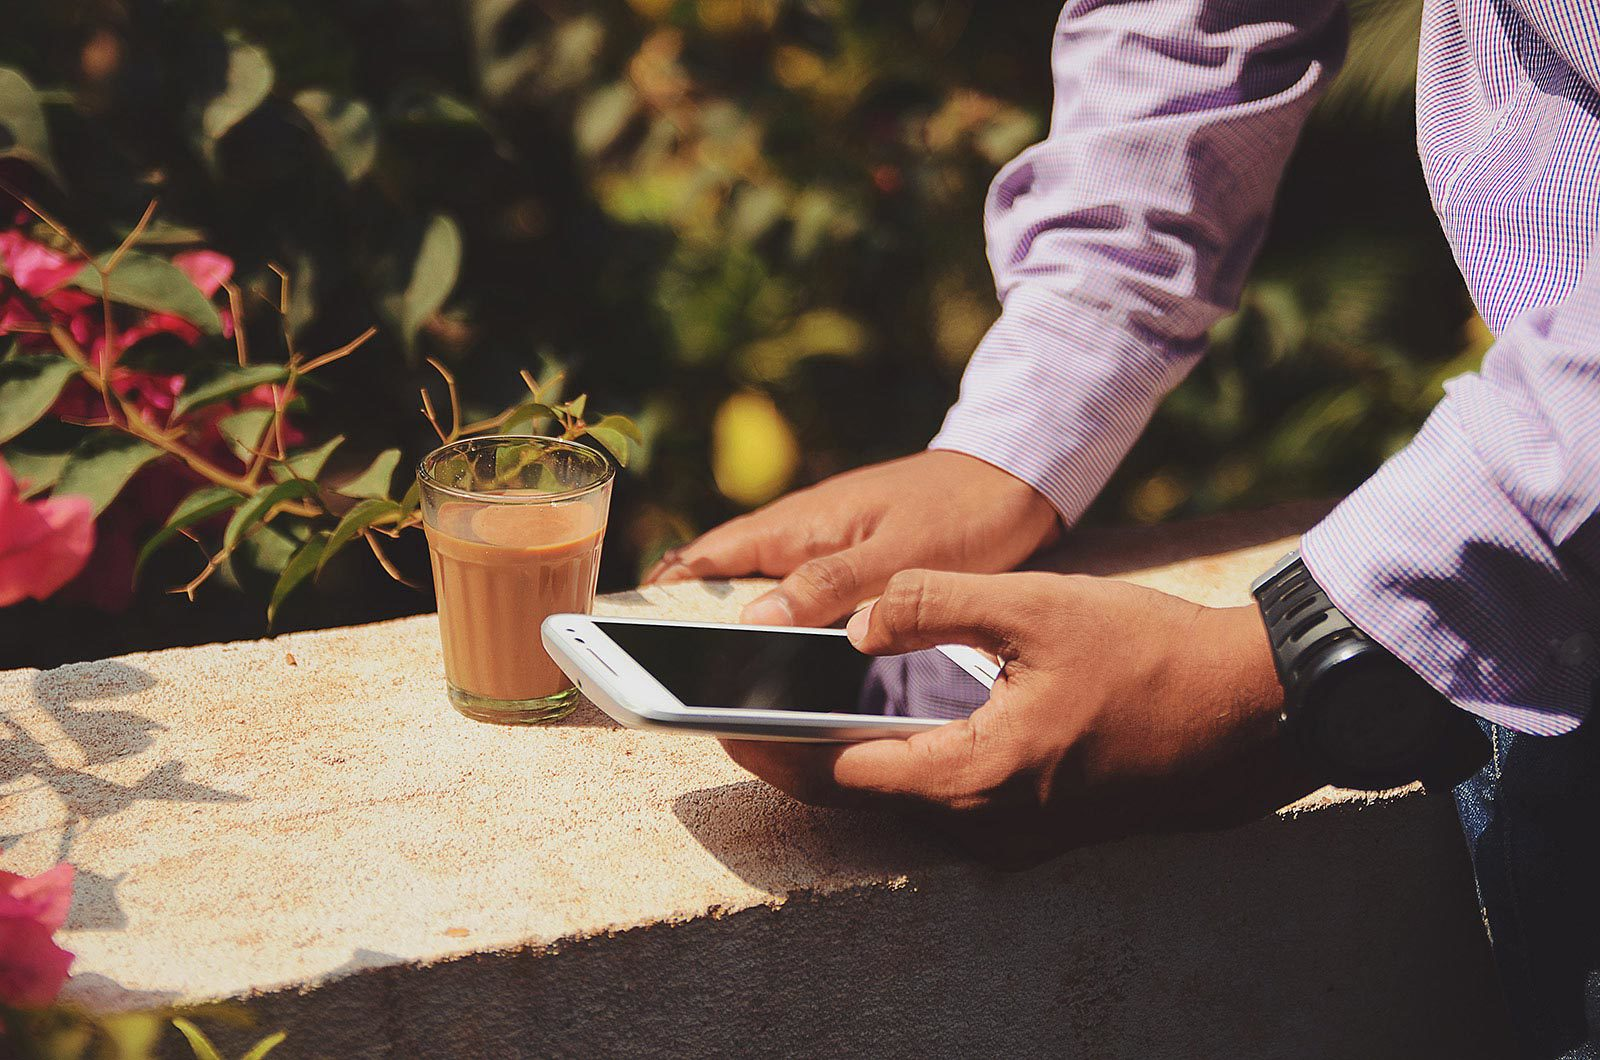 Man's arms leaning on cement block on cellphone next to flower bush and brown drink.